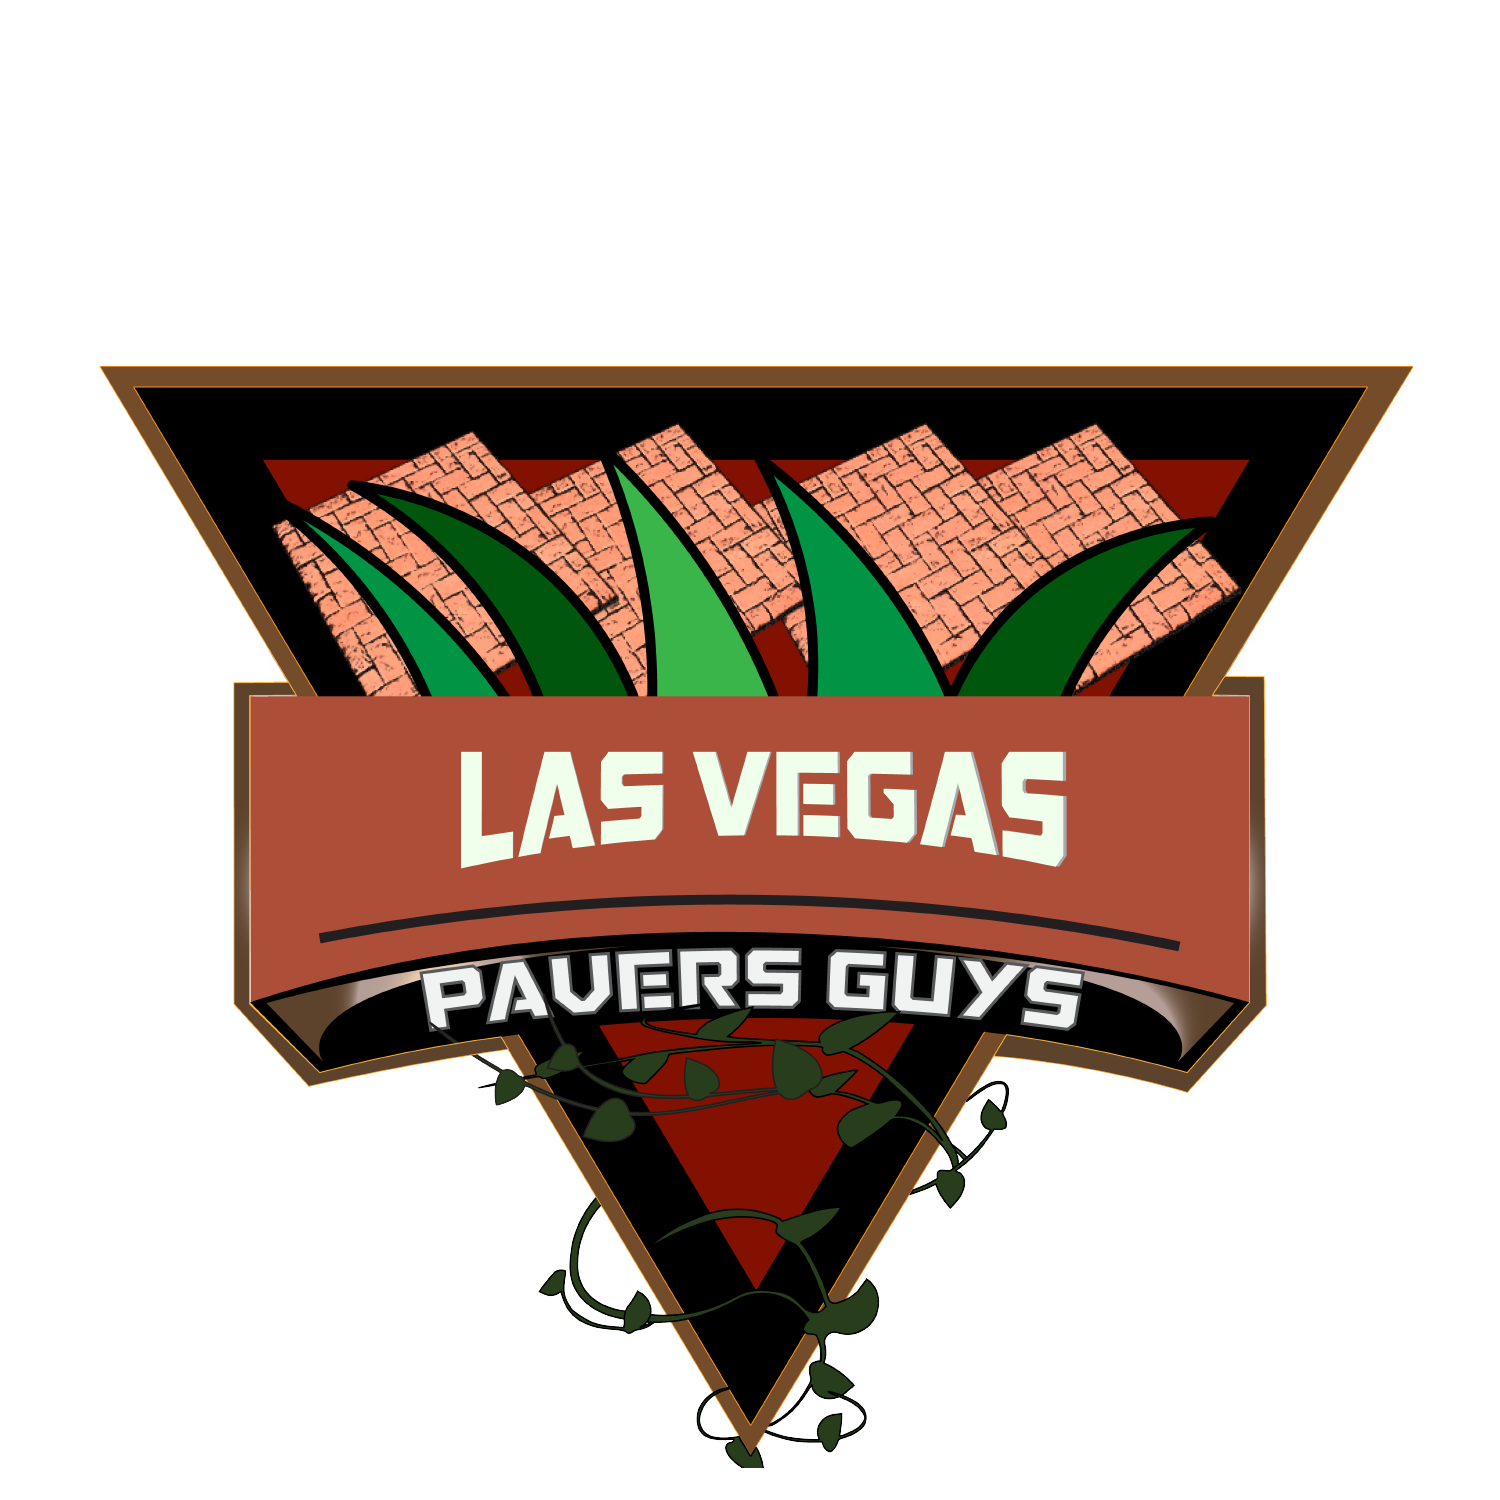 Pavers Guys of Las Vegas, a Top-Rated Driveway Pavers Contractor in Las Vegas